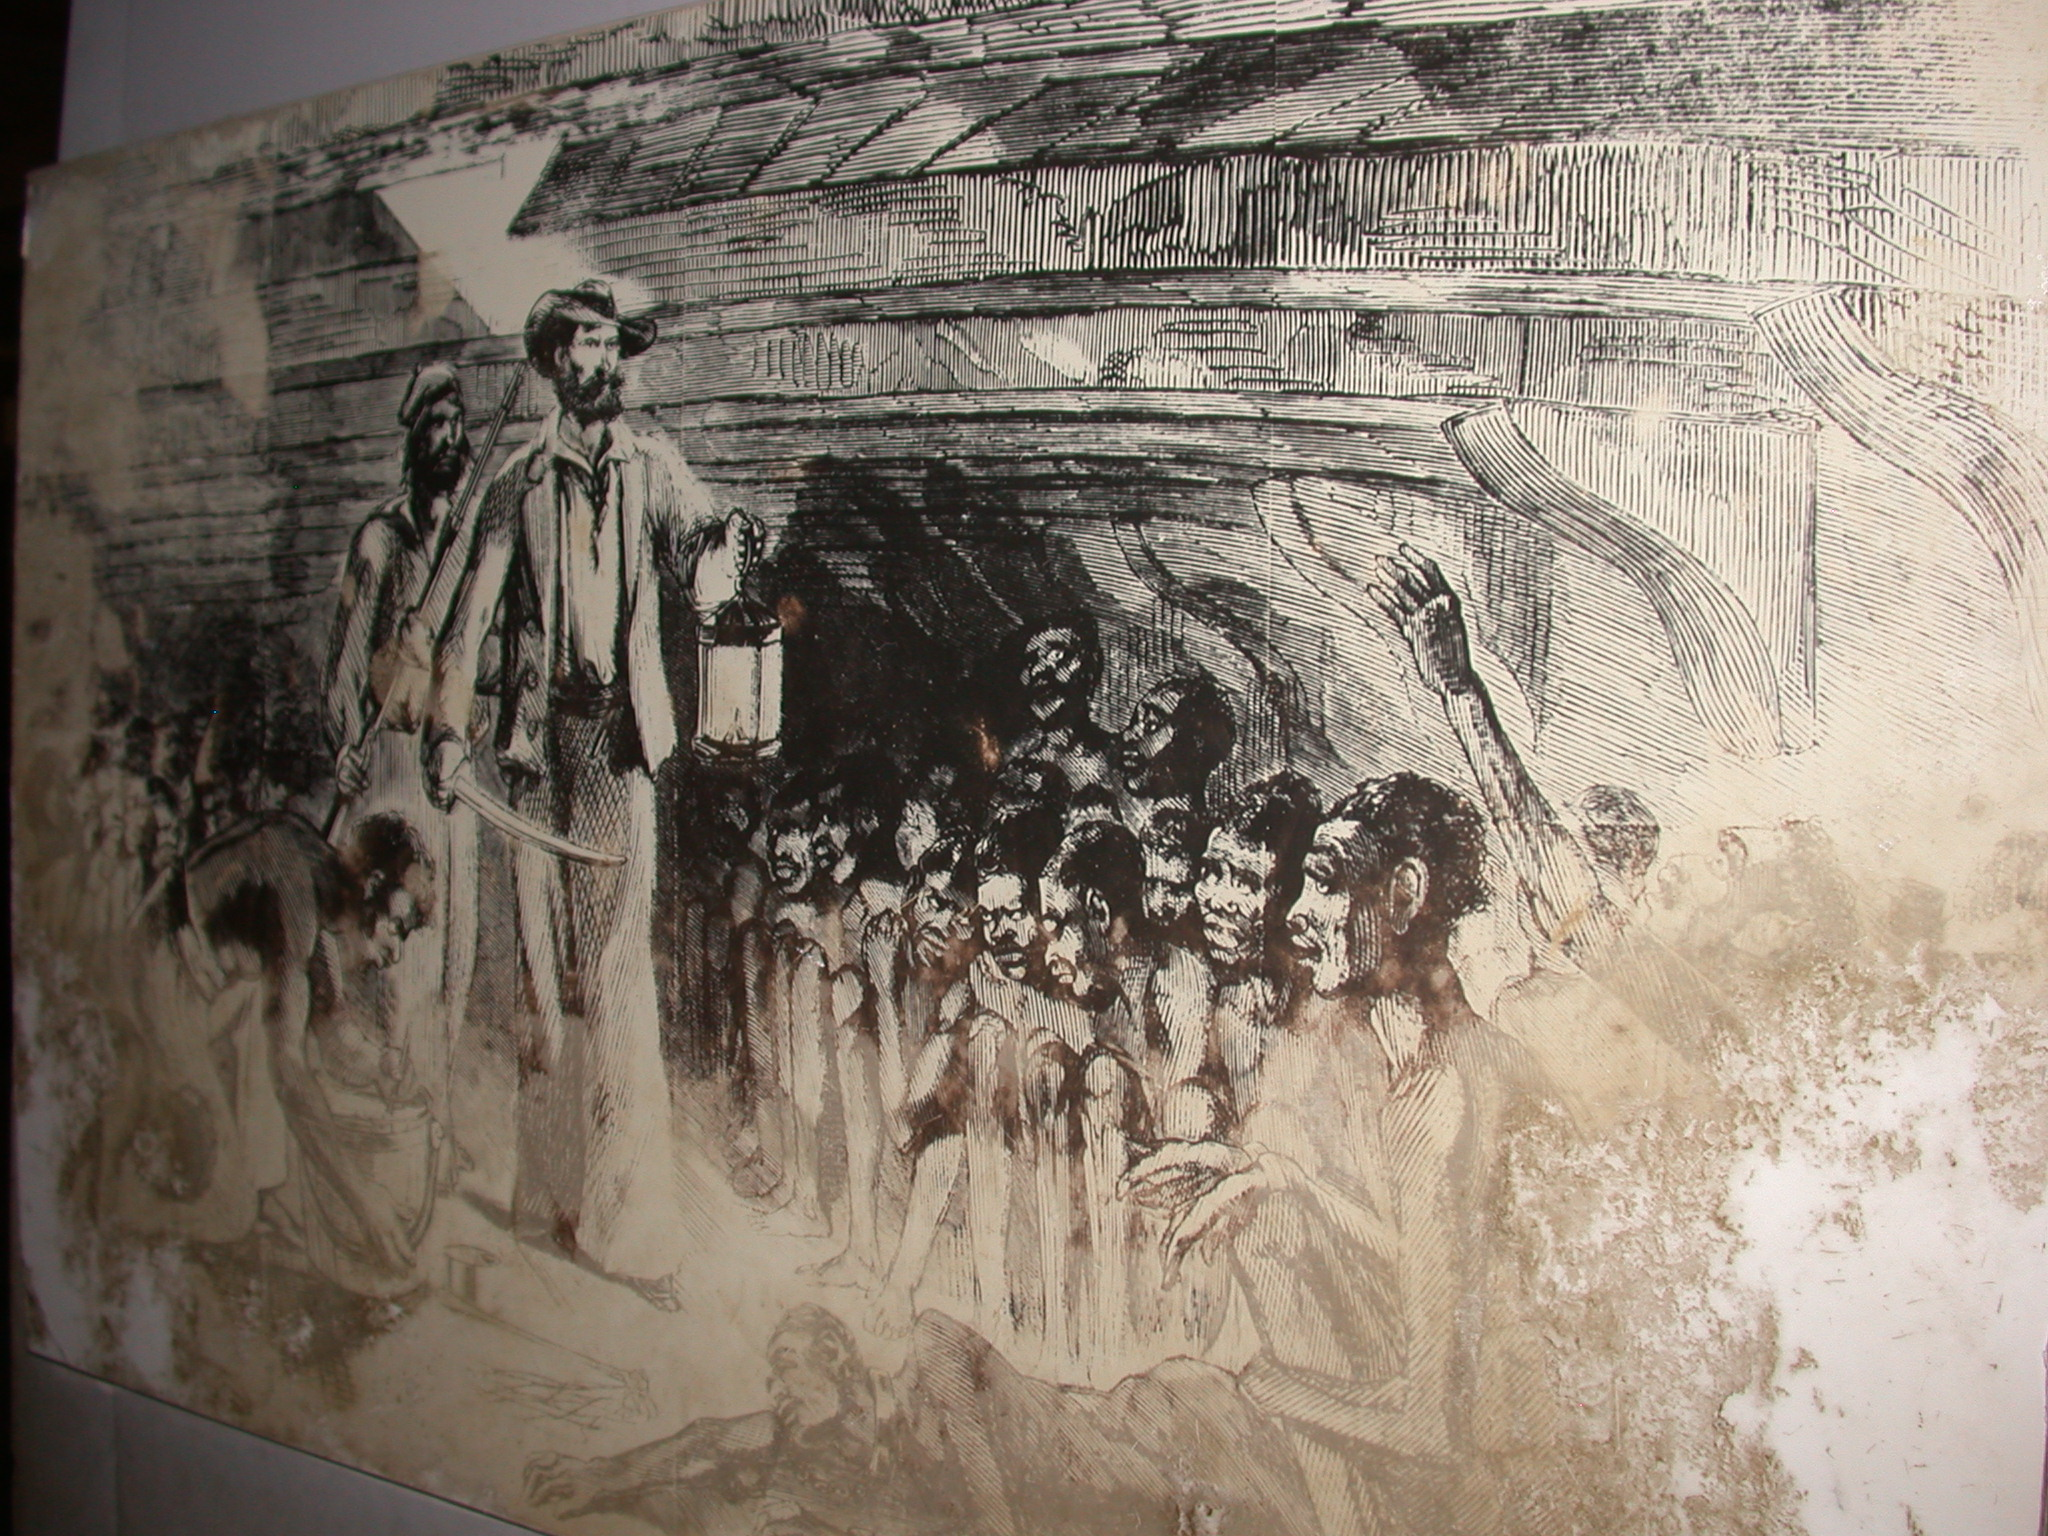 Drawing of Middle Passage of Slaves in Boat, Cape Coast Slave Fort Museum, Cape Coast, Ghana